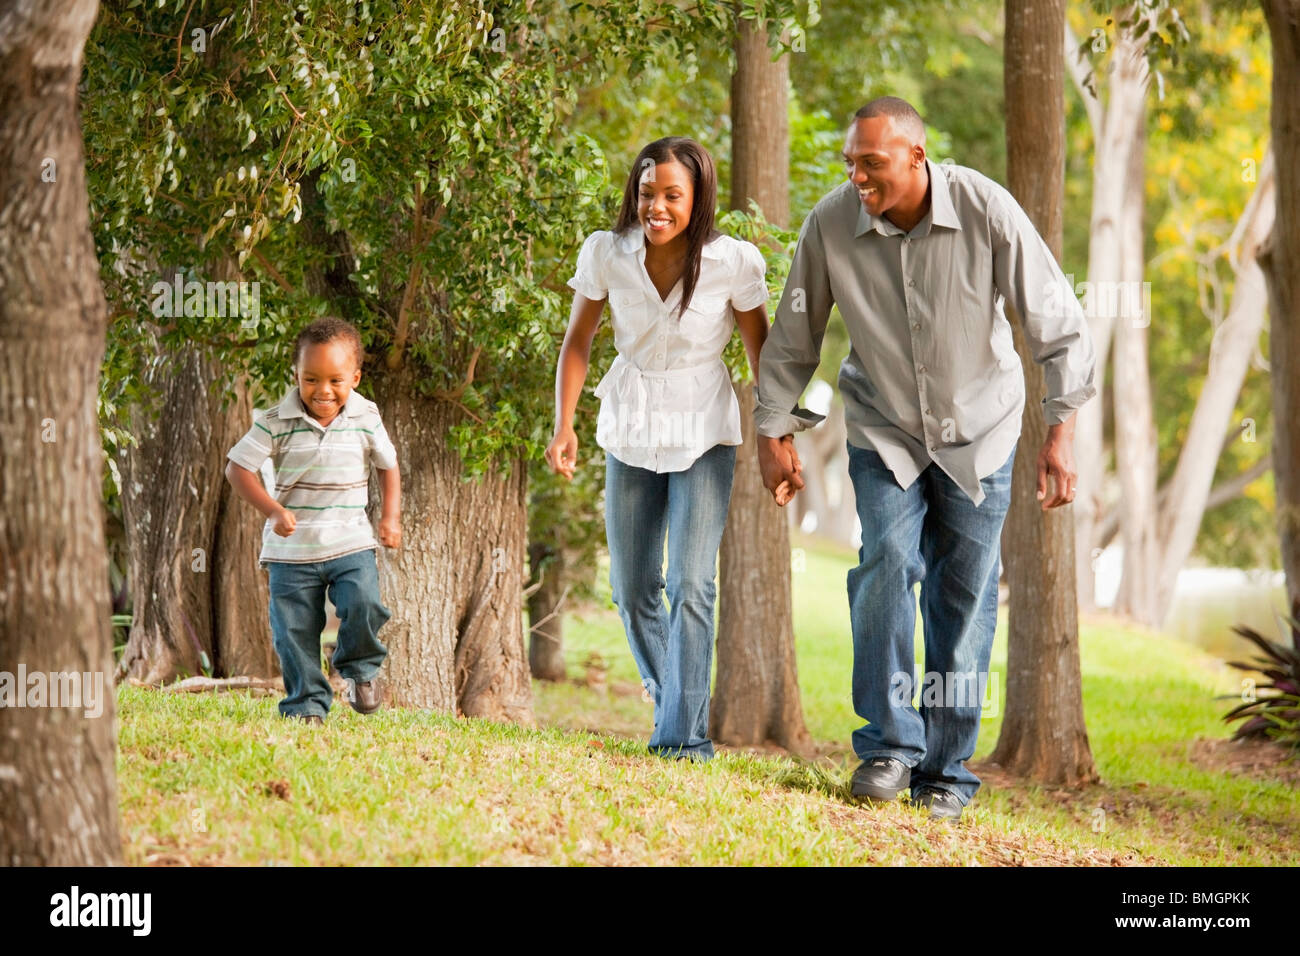 Fort Lauderdale, Florida, United States Of America; A Father And Mother With Their Young Son Walking Through A Park Stock Photo